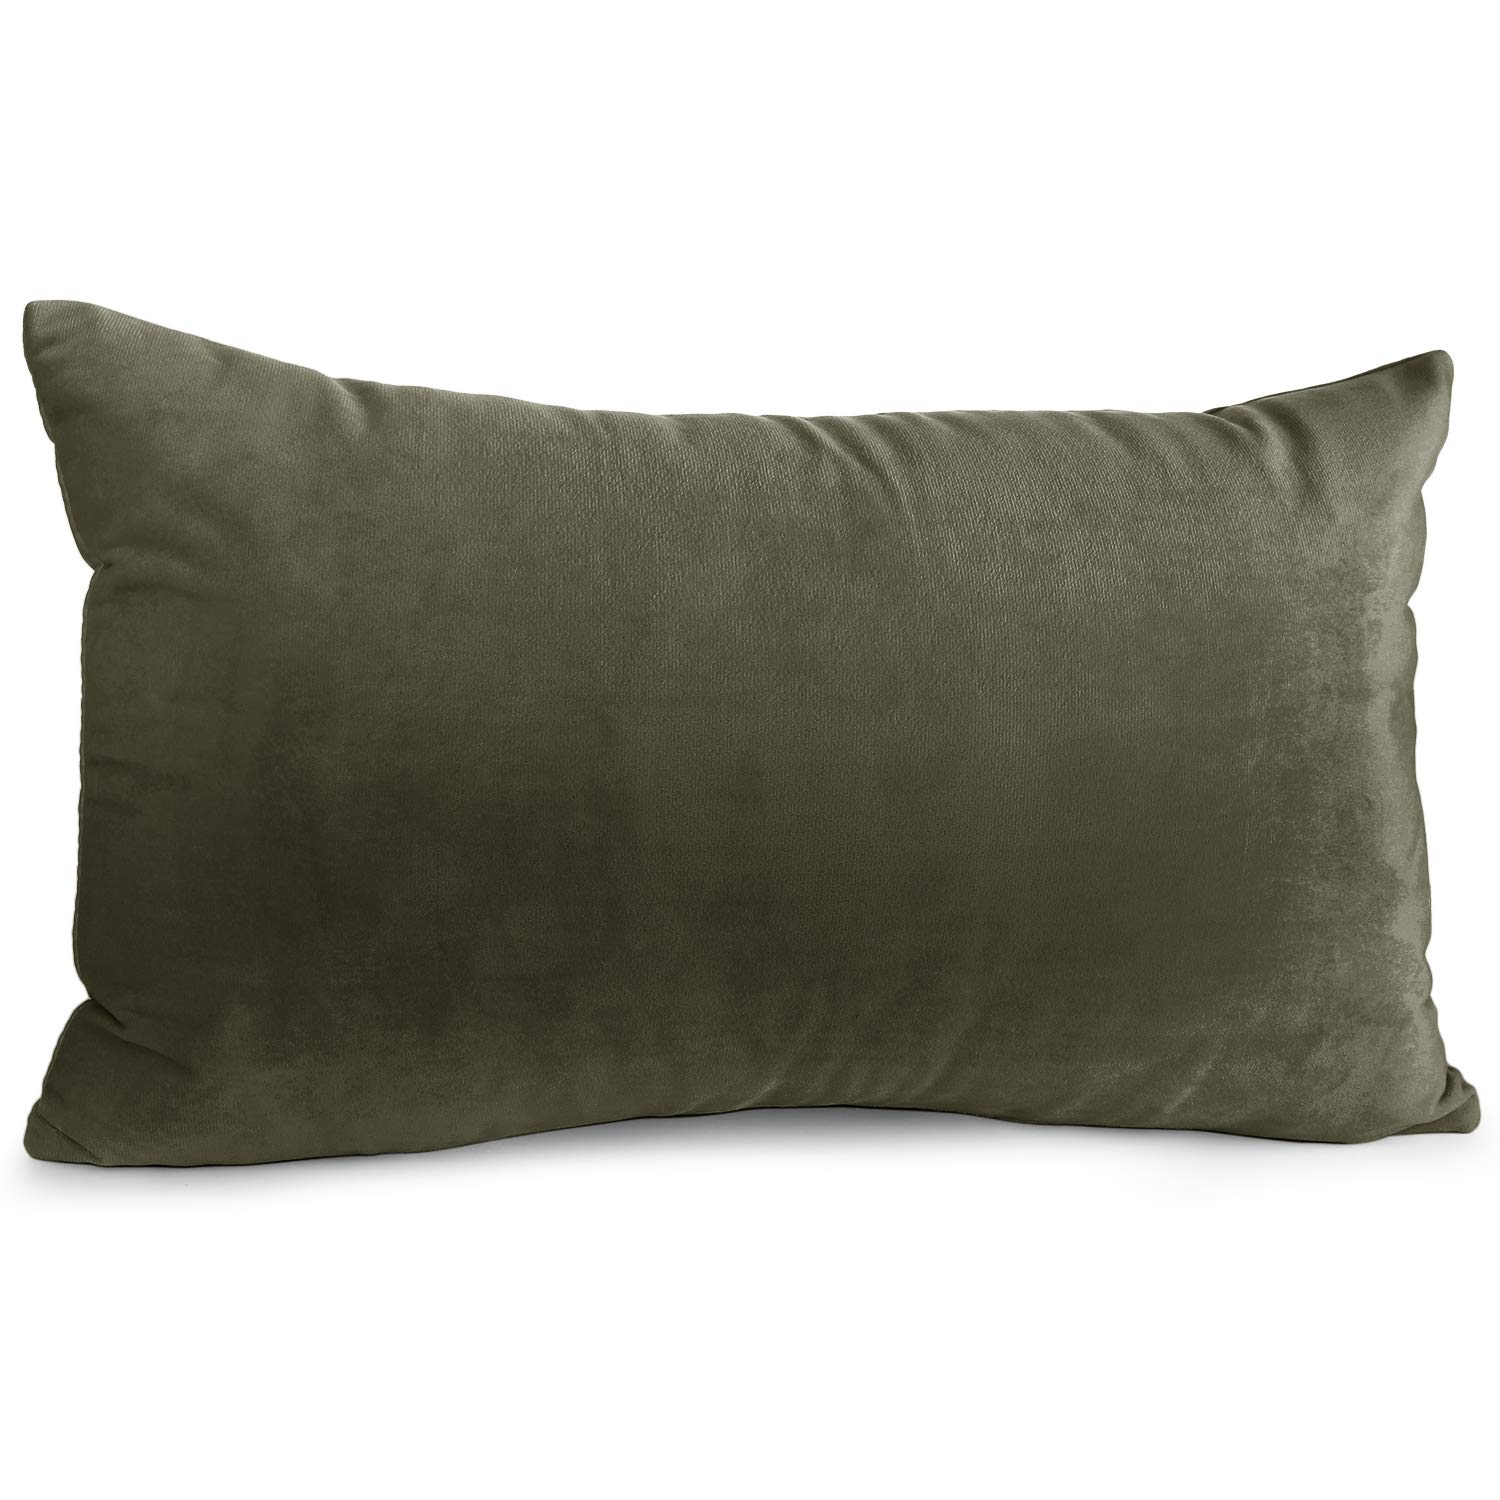 """Nestl Bedding Throw Pillow Cover 12"""" x 20"""" Soft Square Decorative Throw Pillow Covers Cozy Velvet Cushion Case for Sofa Couch Bedroom - Khaki"""